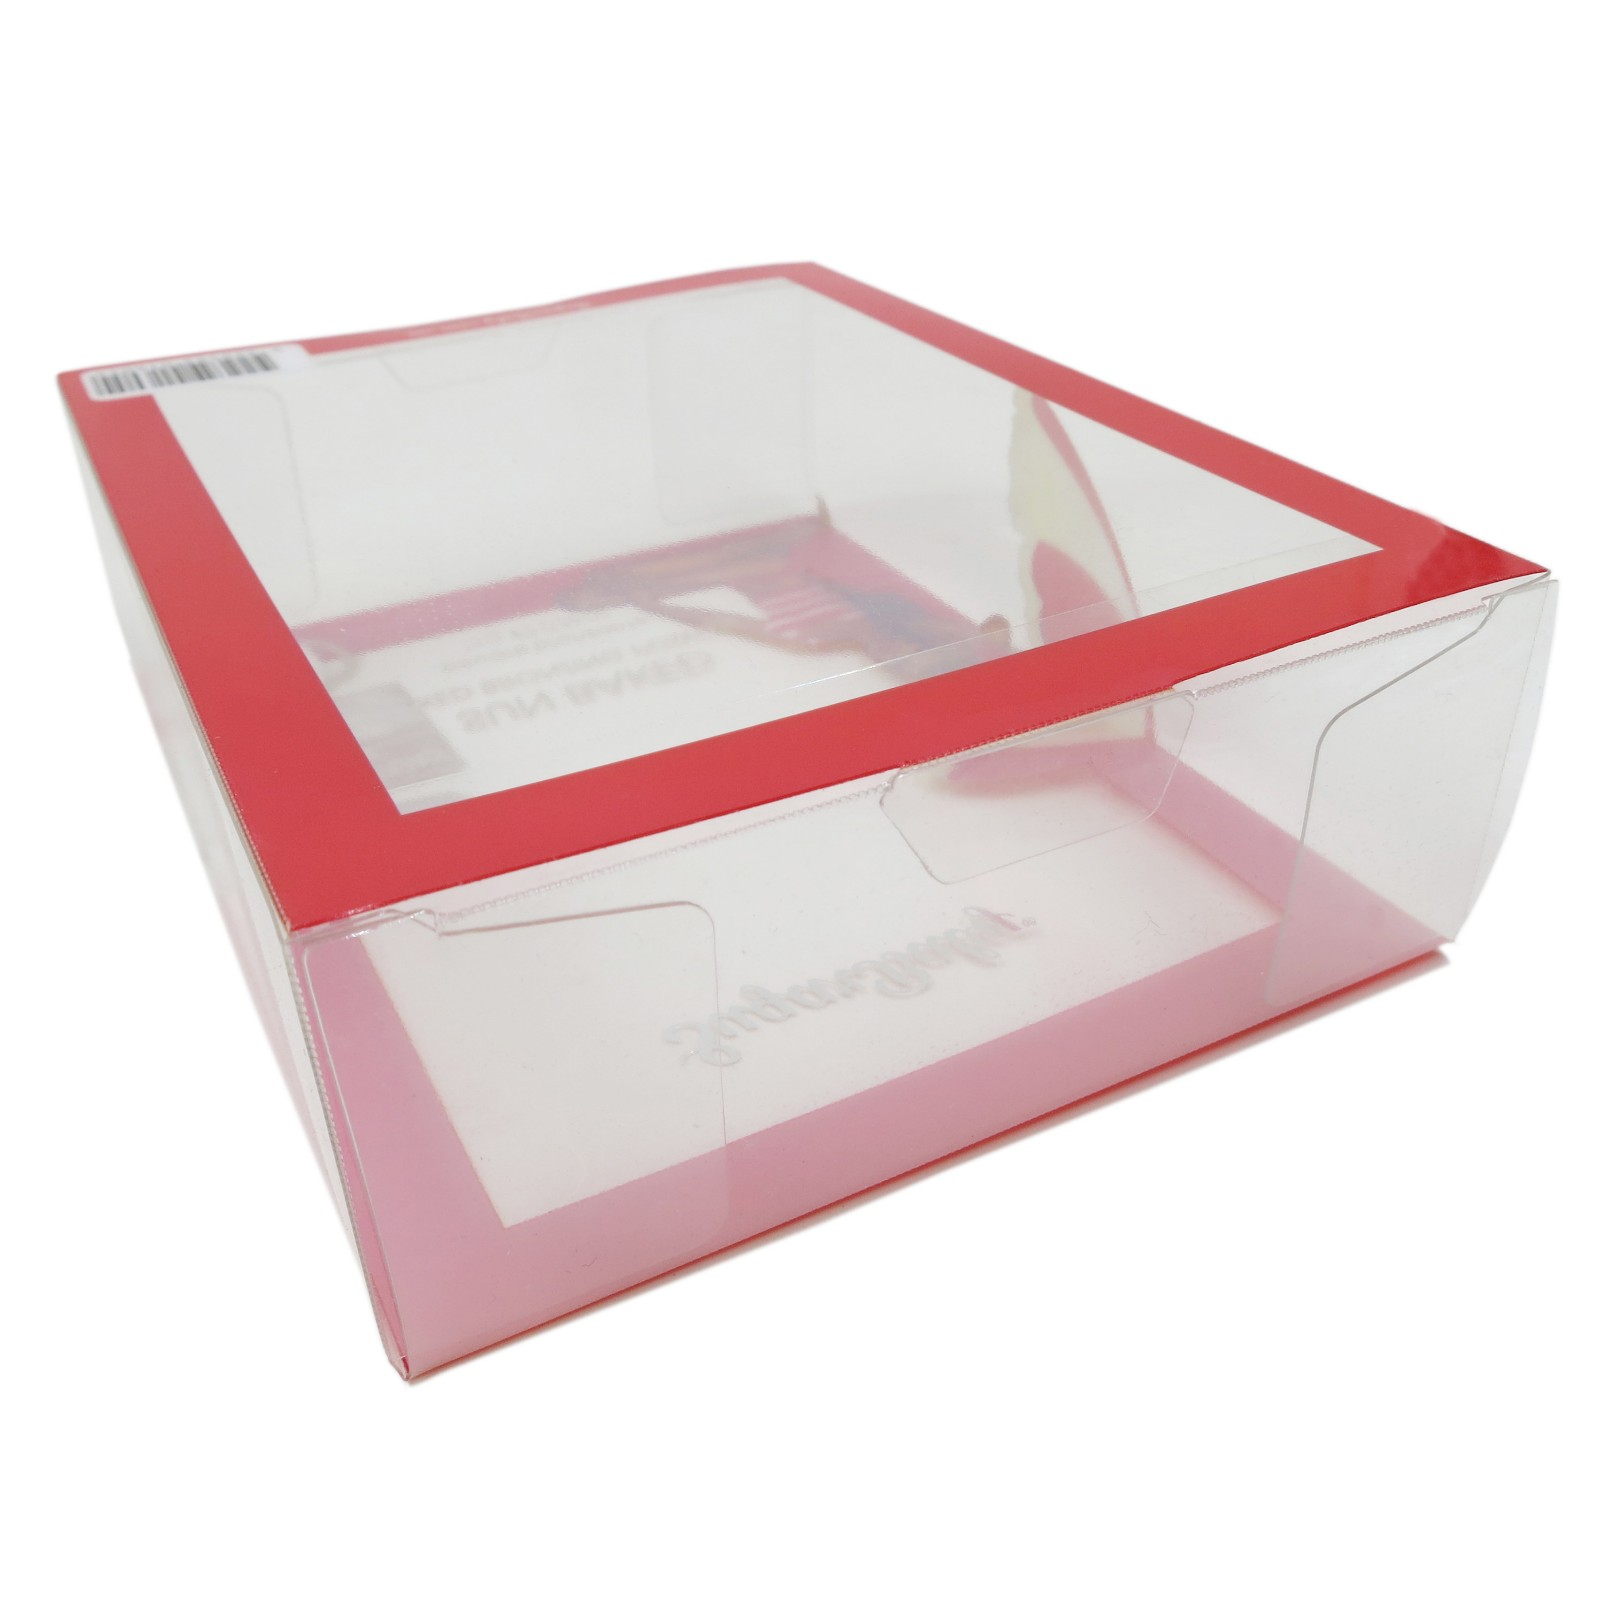 first-rate plastic box packaging display widely-use for food-6